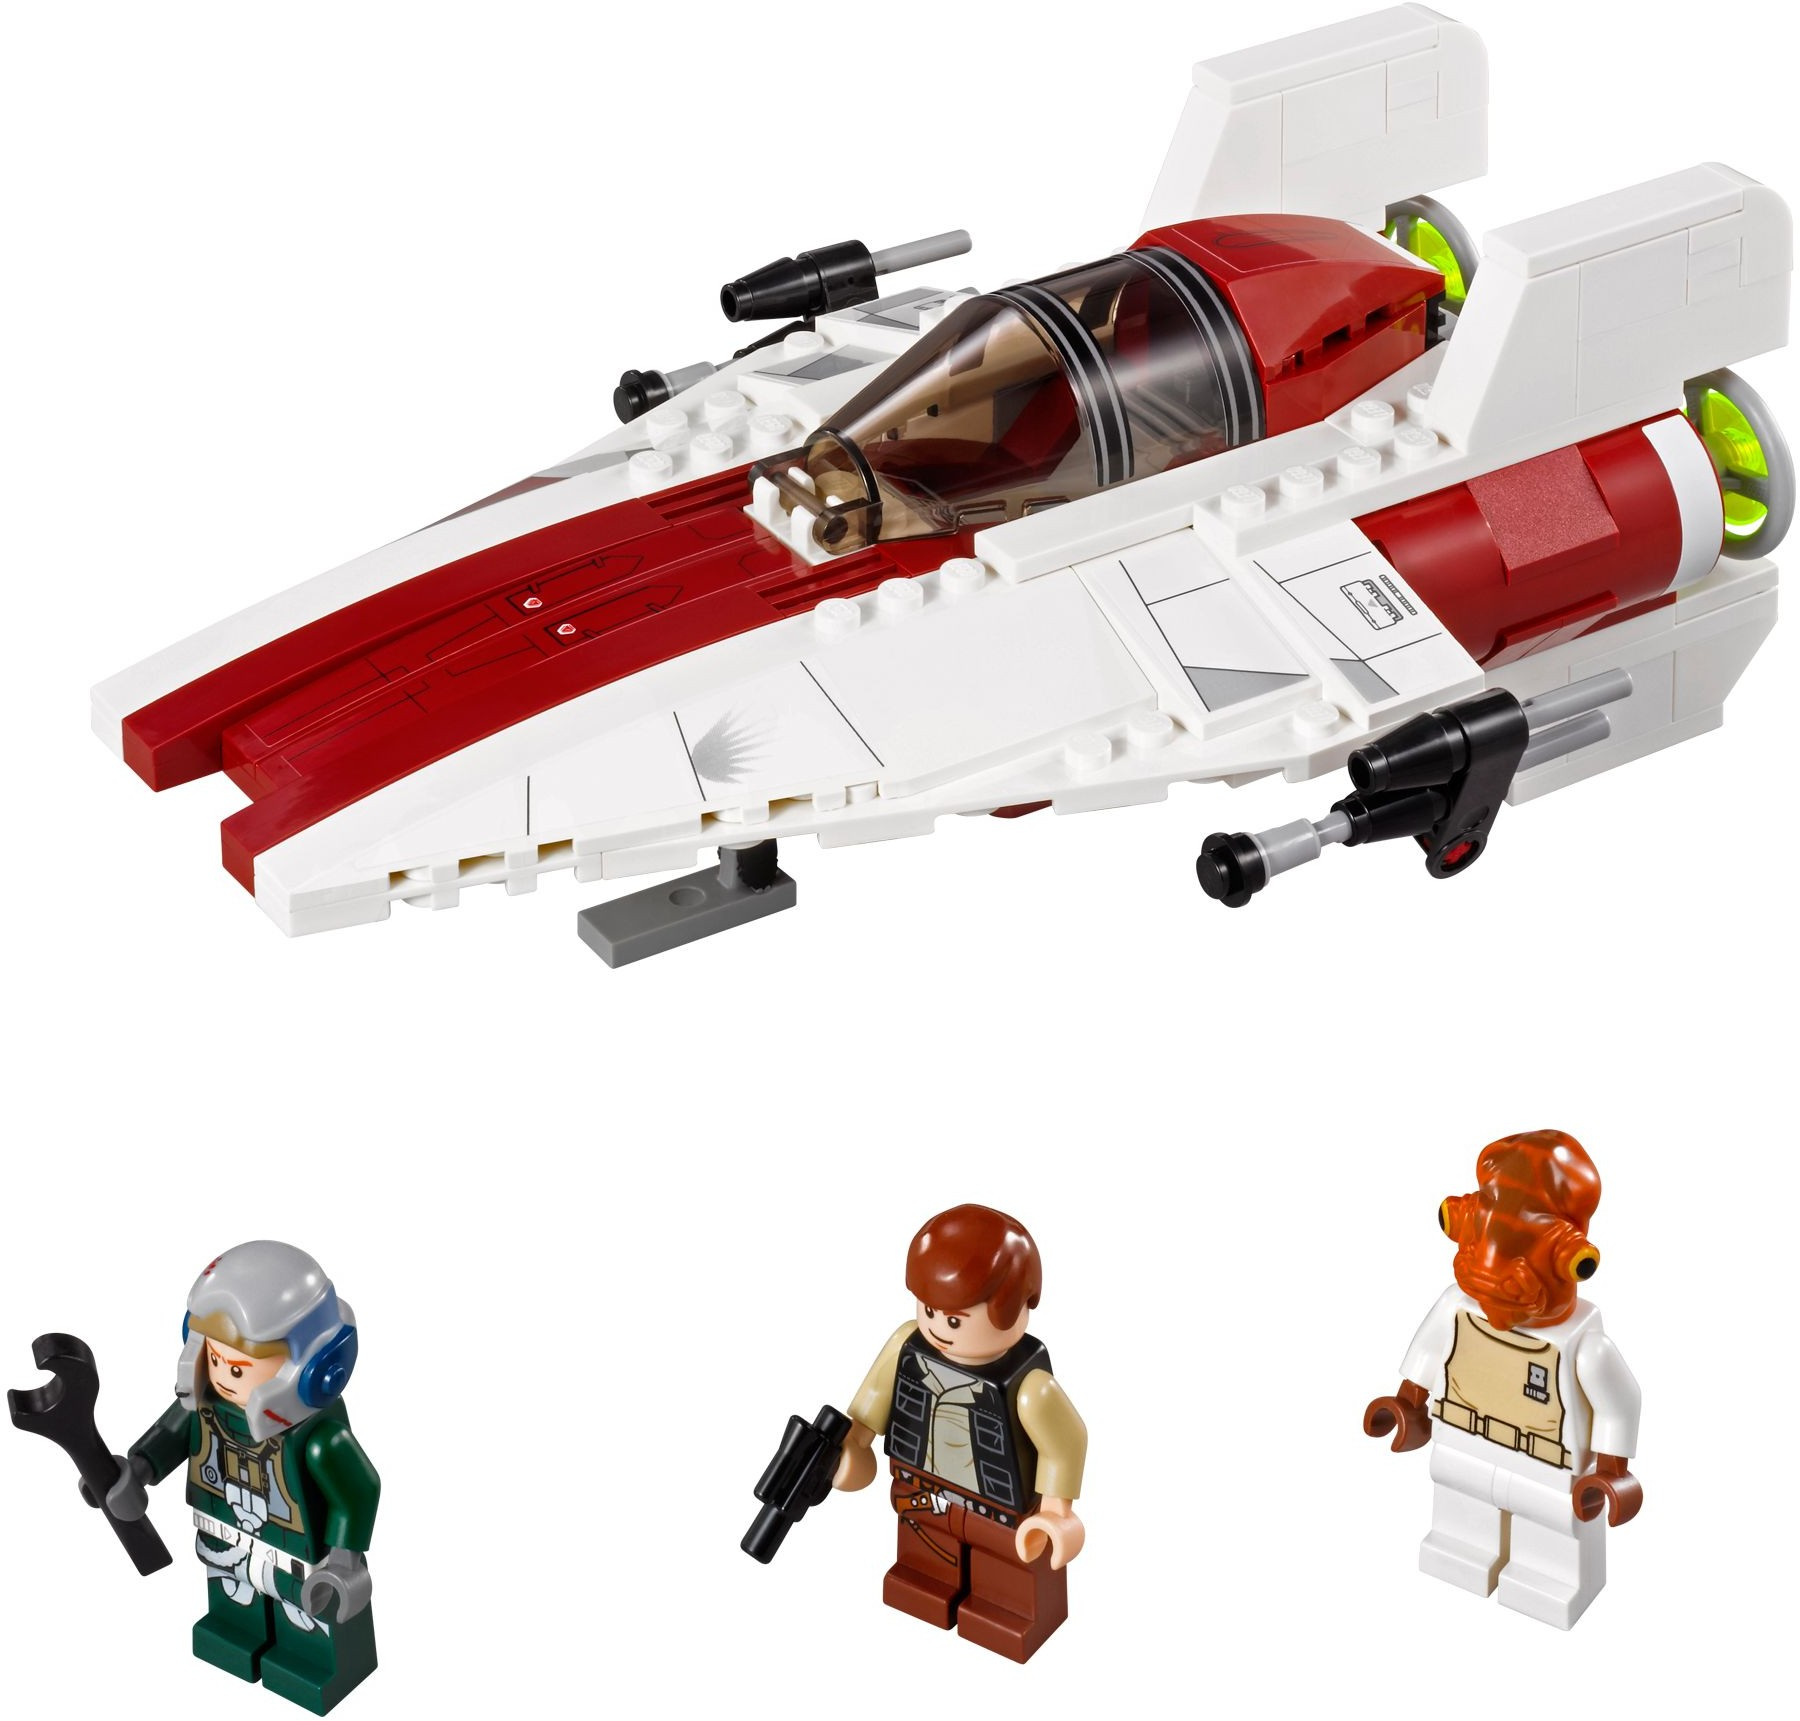 Star Wars   2013   Brickset  LEGO set guide and database A wing Starfighter